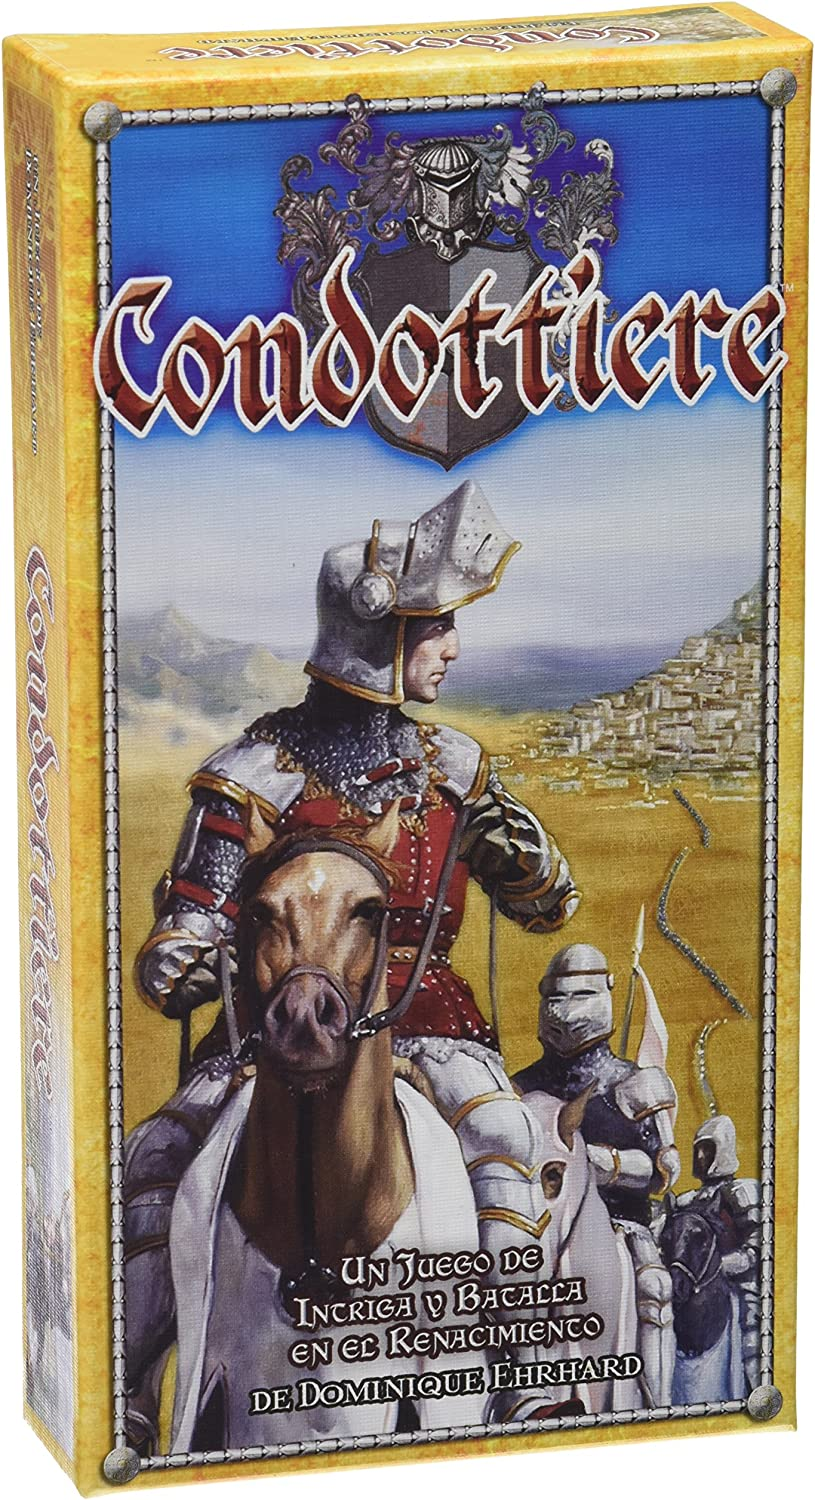 Edge Entertainment - Condottiere, juego de cartas (EDGFF04): Ehrhard, Dominique: Amazon.es: Juguetes y juegos